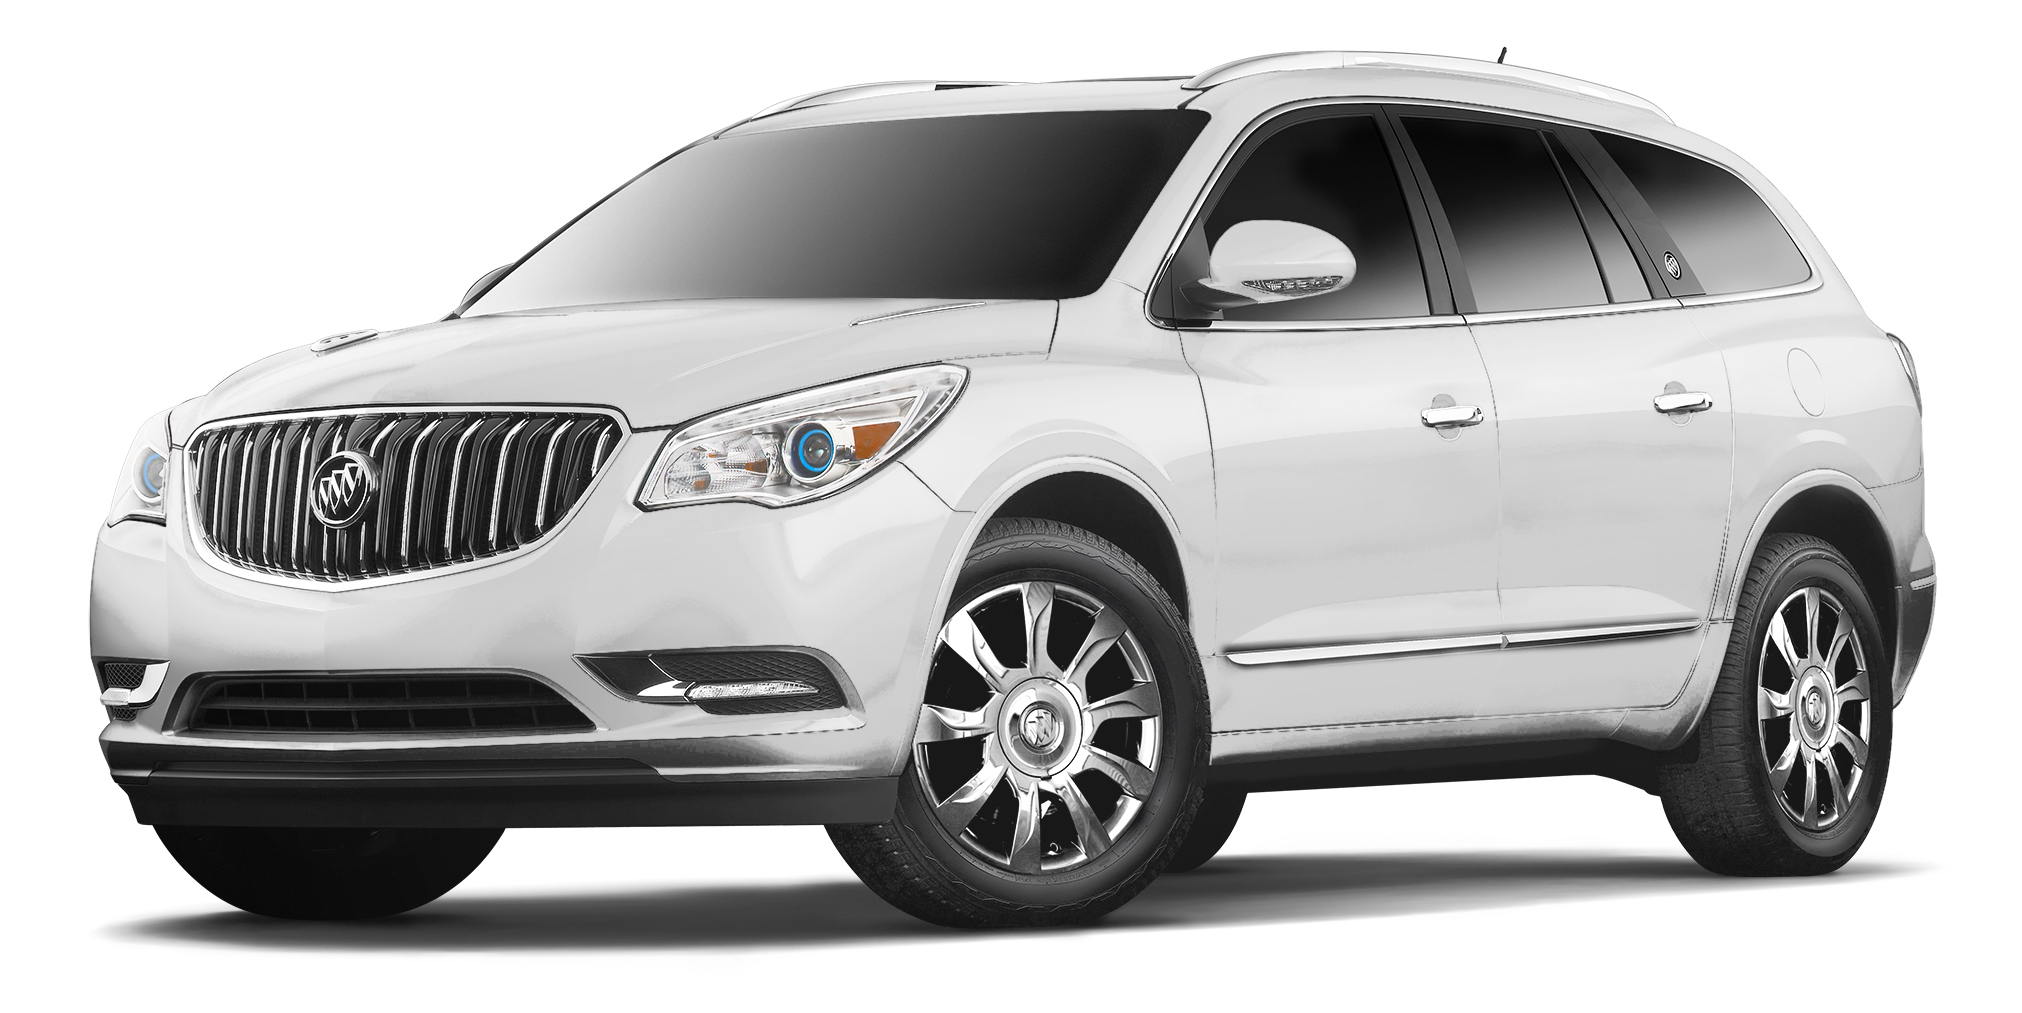 2017 buick enclave winnipeg enclave safety details specs gauthier. Black Bedroom Furniture Sets. Home Design Ideas